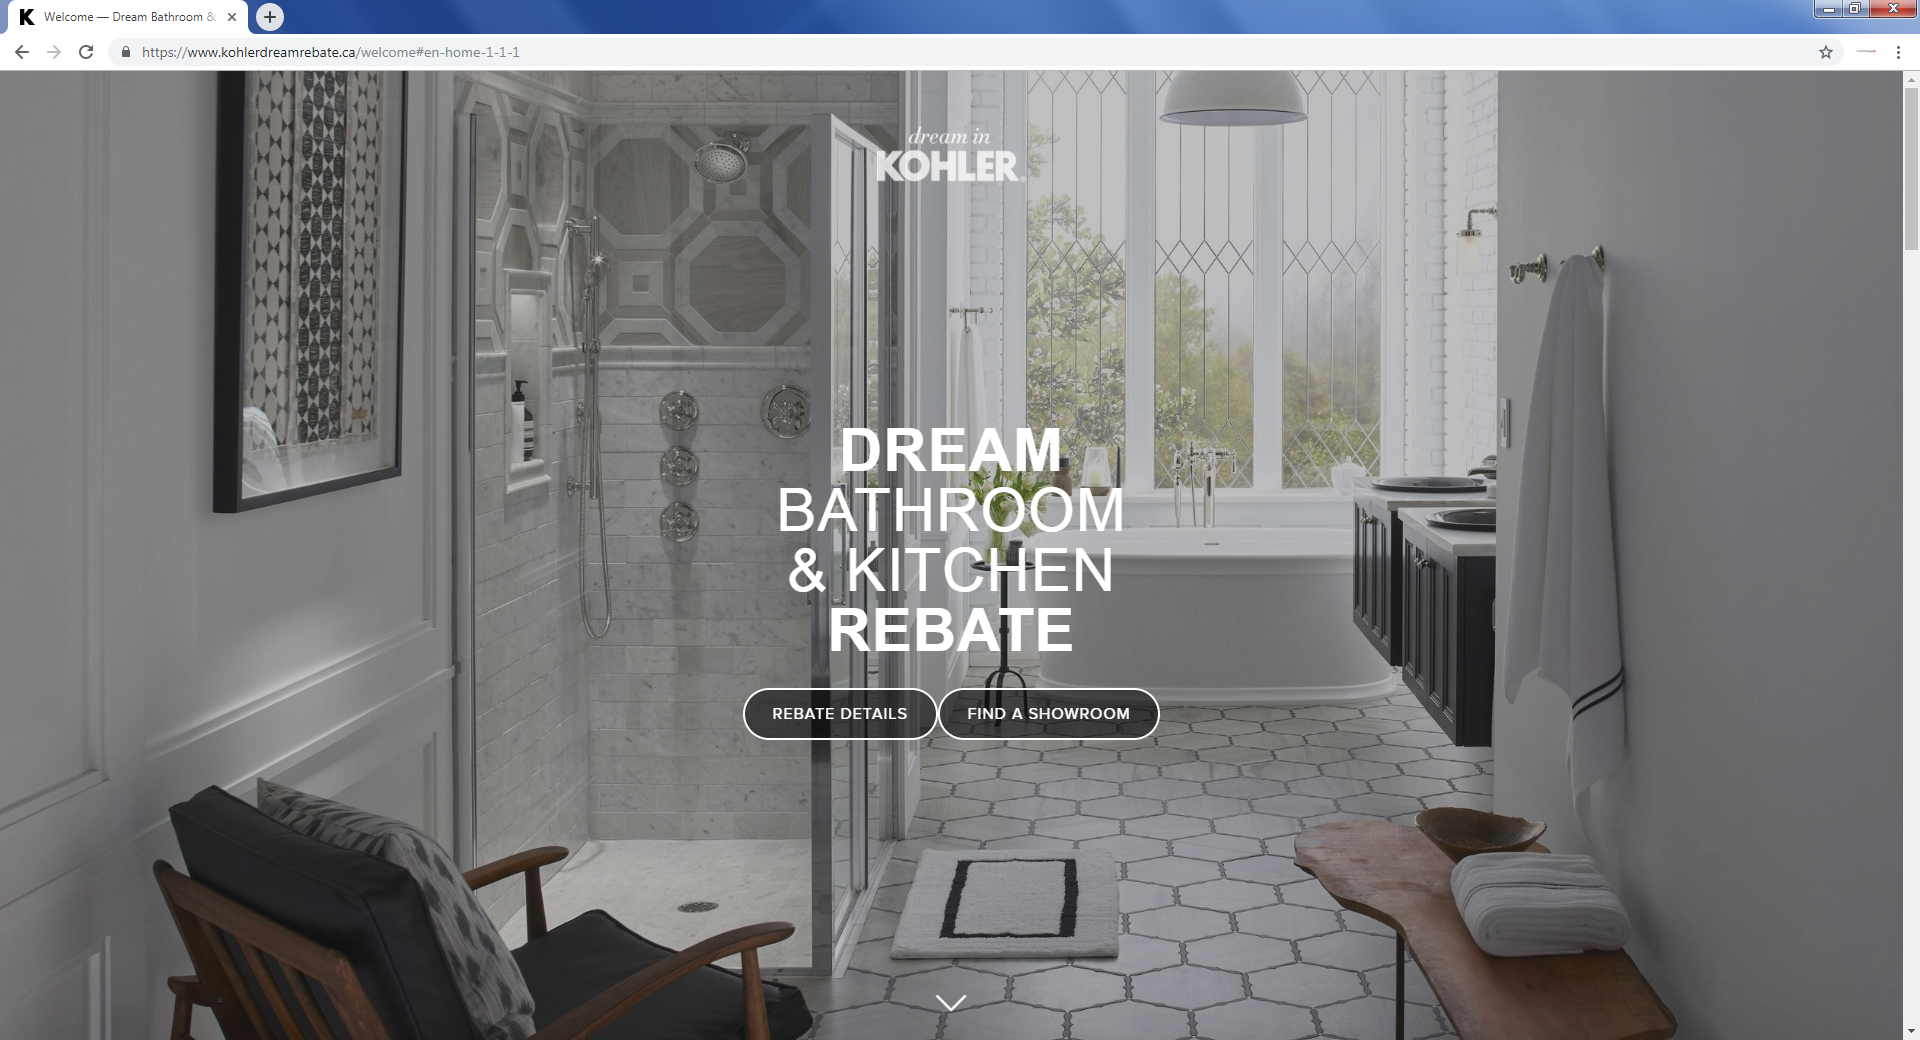 Torpedo Tidbit:  Kohler Canada is a leading global manufacturer of quality kitchen & bathroom fixtures. In 2016, Kohler Canada reached out to Torpedo Marketing to help with their Dream Rebates program offered to their customers. Kohler dealerships across Canada participated in an inaugural Canadian rebate program that was offered to consumers based on their purchases. The Kohler Canada Dream Rebate campaign exceeded expectations with over 50% greater rebates than budgeted, translating to over 50% greater sales than expected! (If it worked for Kohler, it could work for you!)